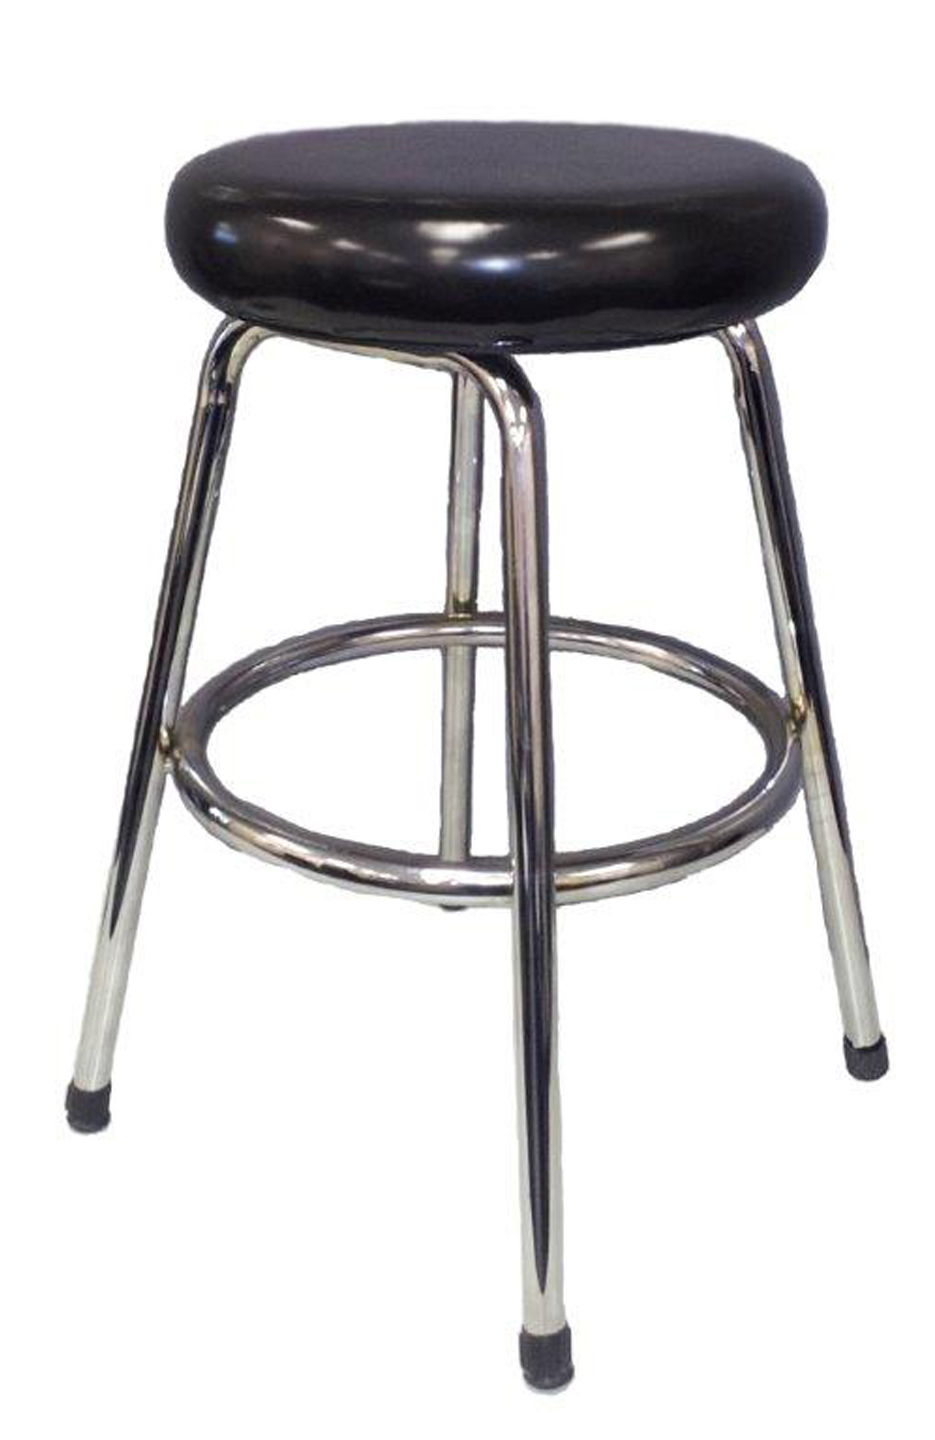 Wipe Down Bench Stool - Upholstered Round Seat_811.jpg